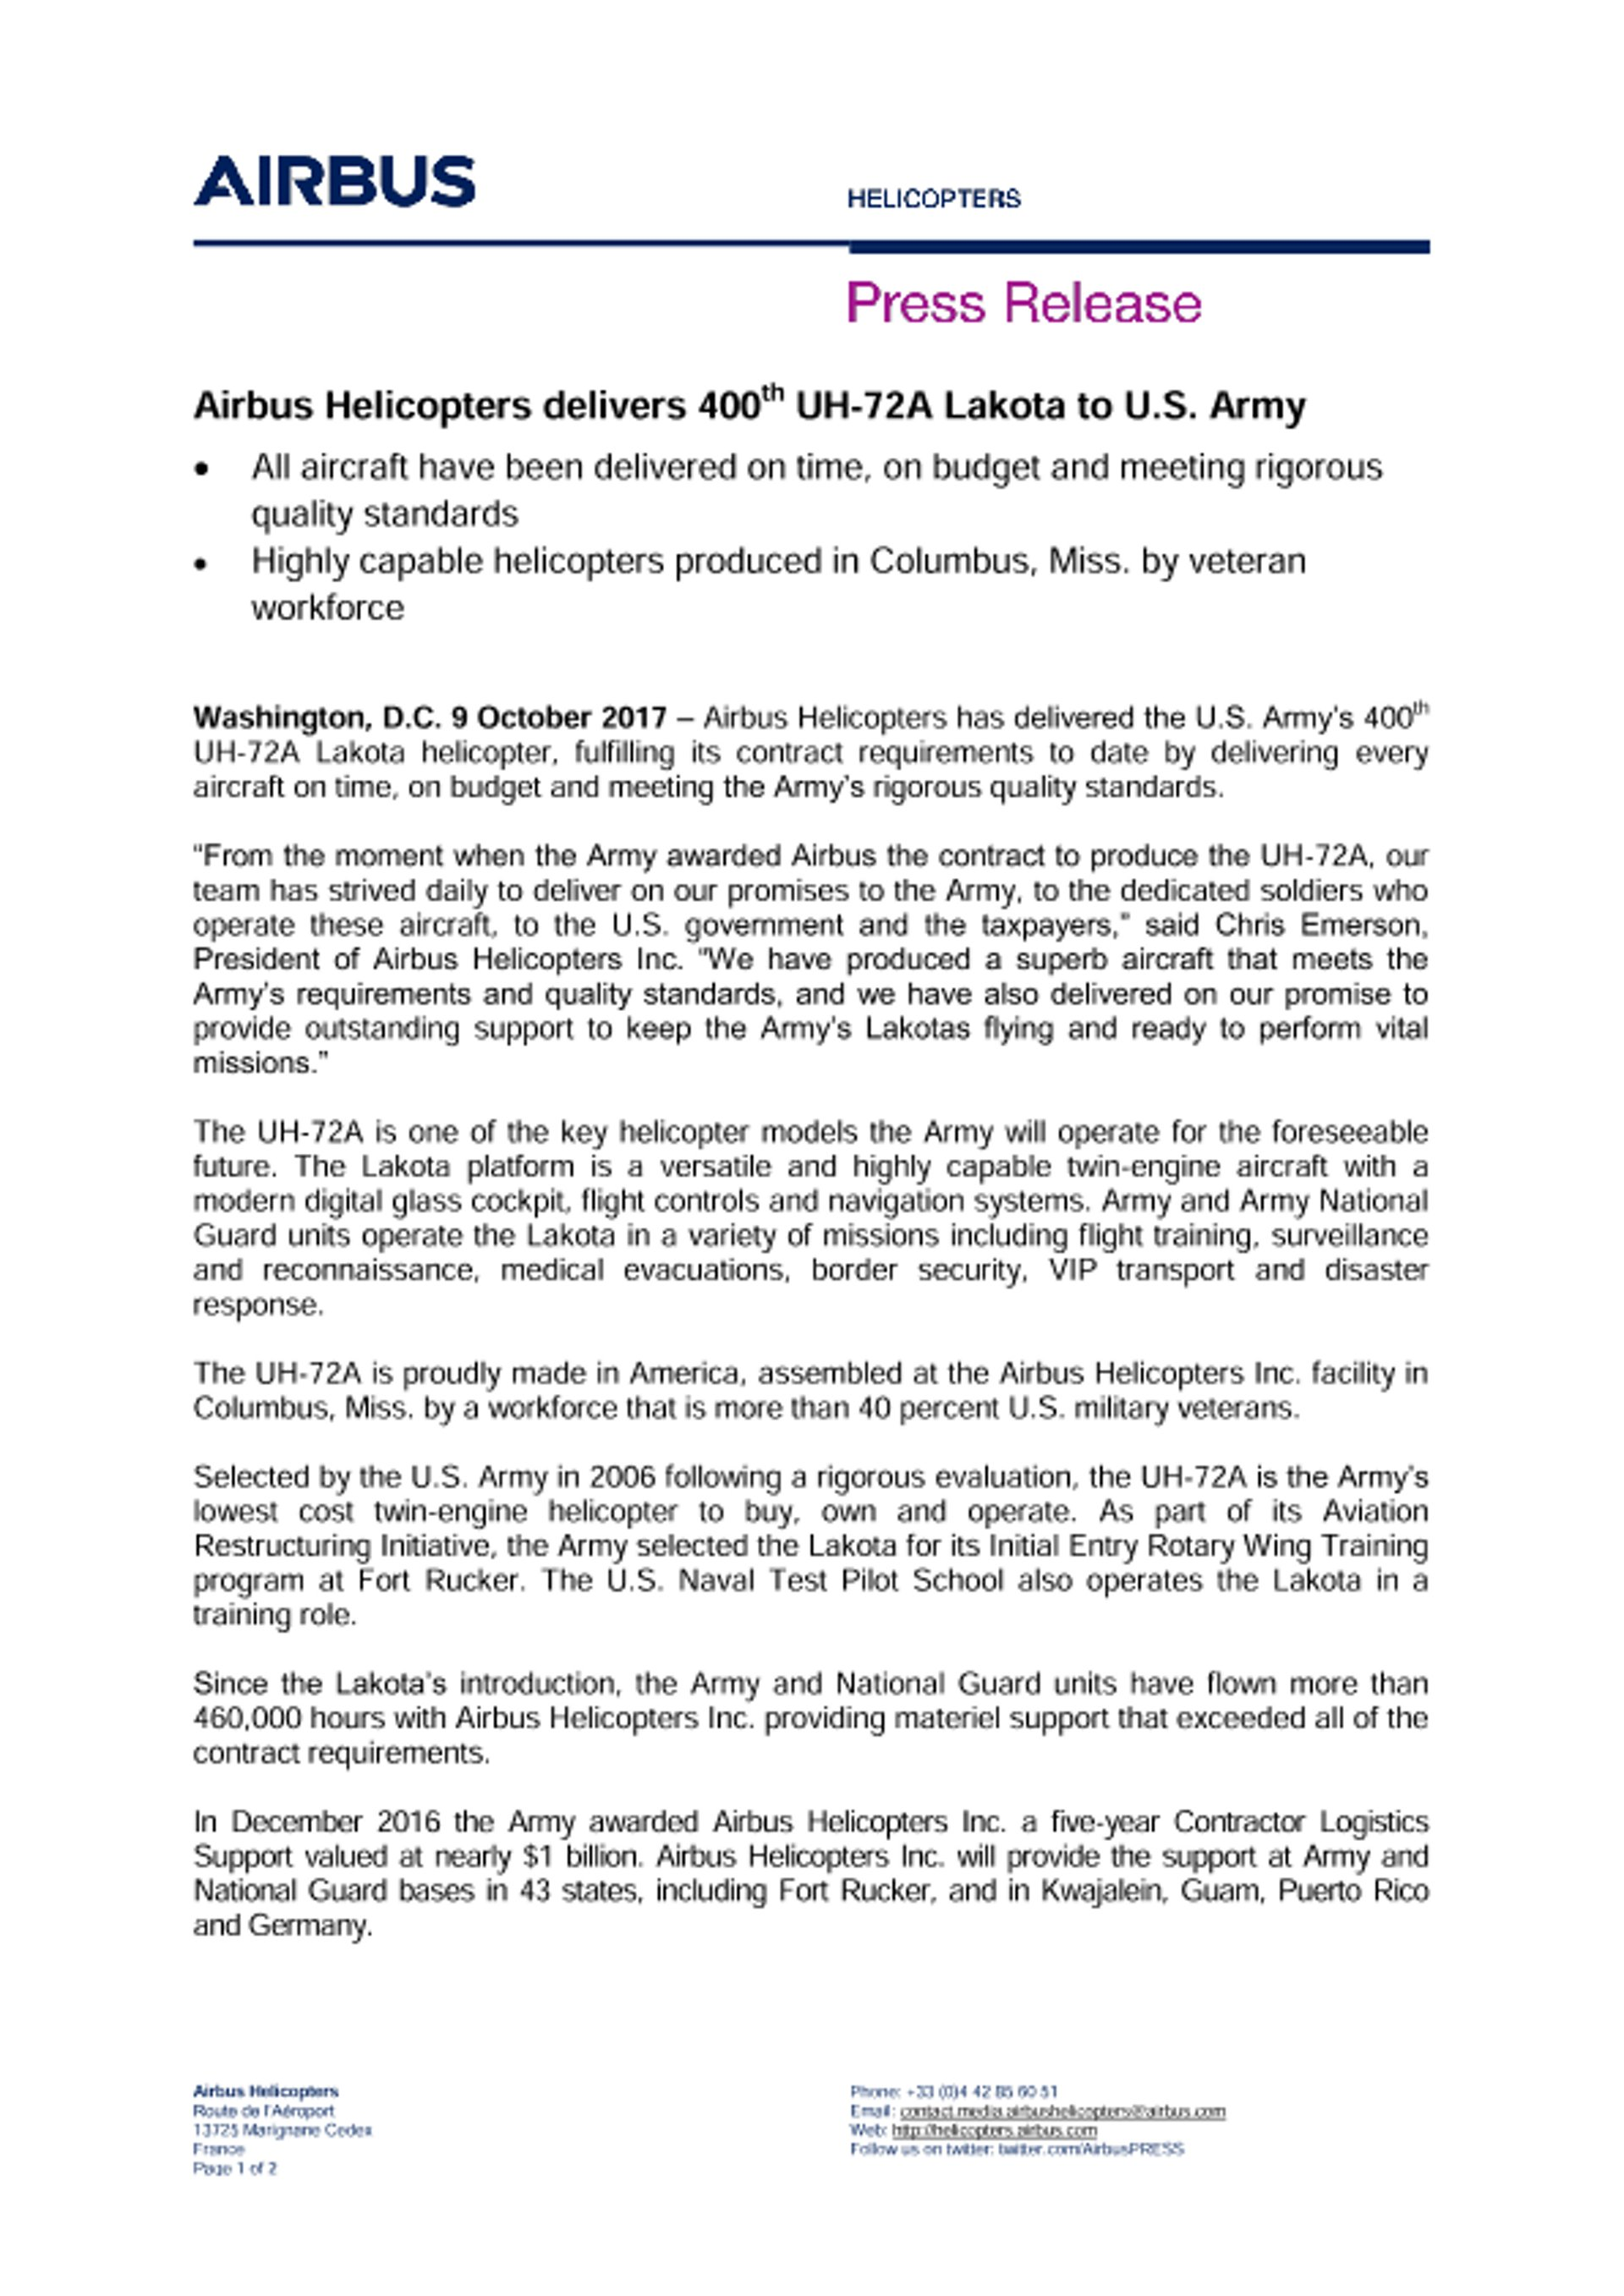 Airbus delivers 400 Lakotas to U.S. Army